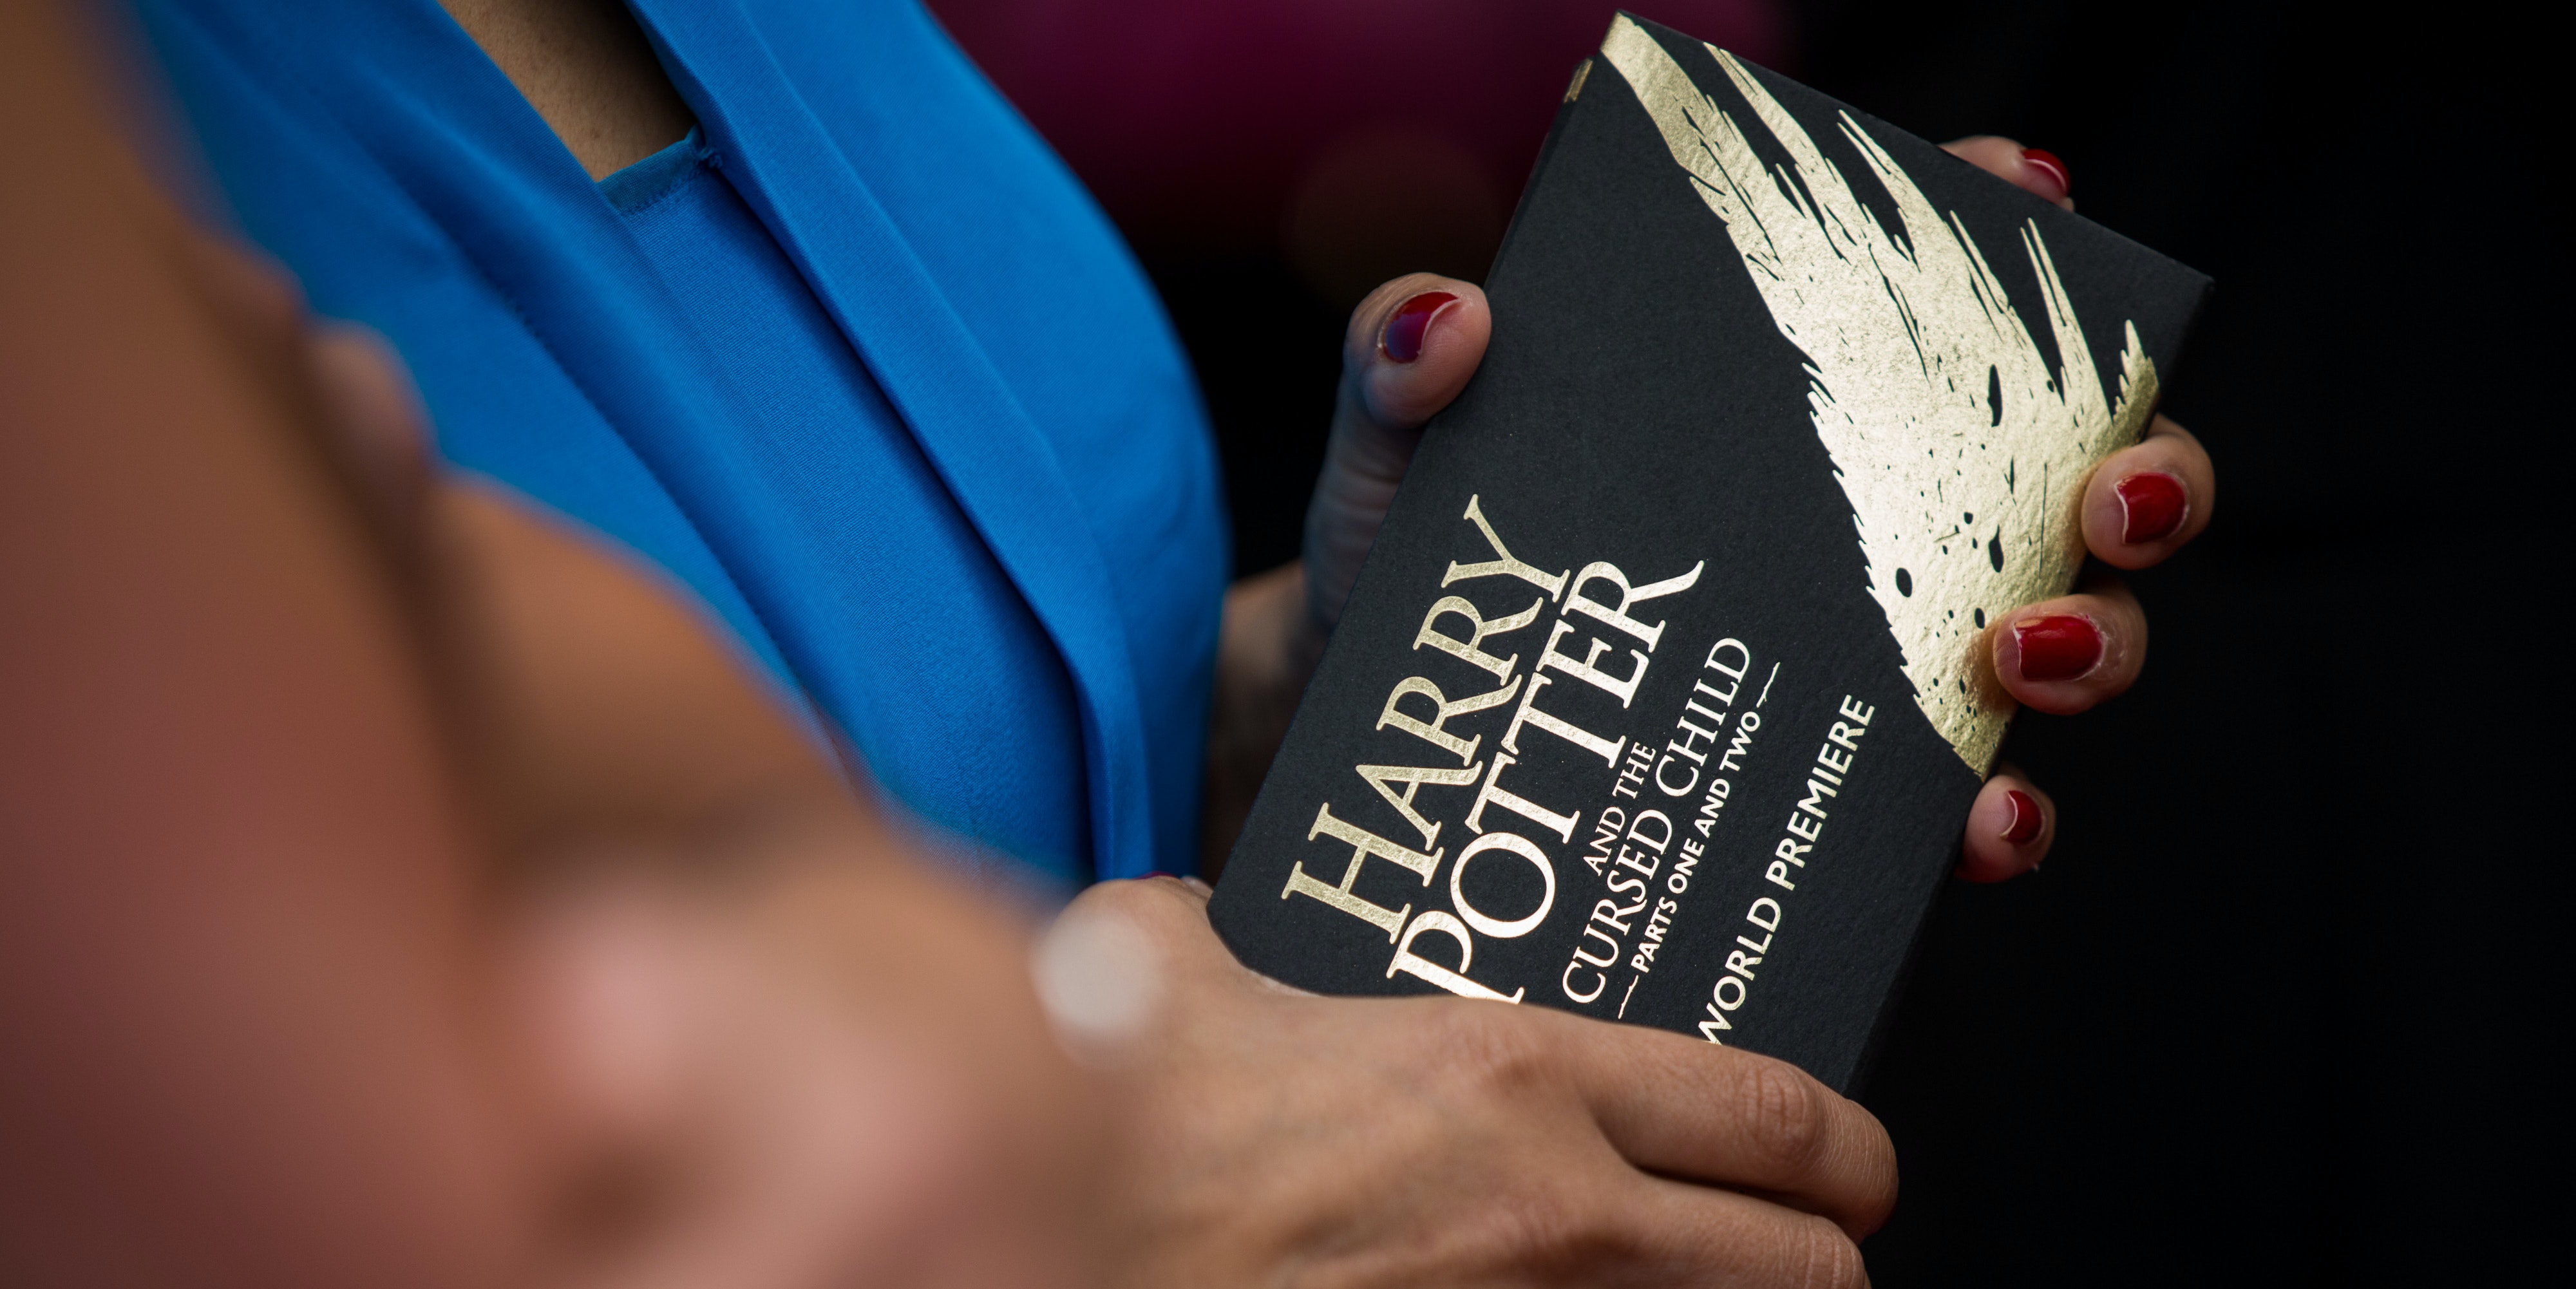 LONDON, ENGLAND - JULY 30:  A woman holds her tickets for 'Harry Potter & The Cursed Child' at Palace Theatre on July 30, 2016 in London, England. Harry Potter and the Cursed Child, is a two-part West End stage play written by Jack Thorne based on an original new story by Thorne, J.K. Rowling and John Tiffany.  (Photo by Rob Stothard/Getty Images)